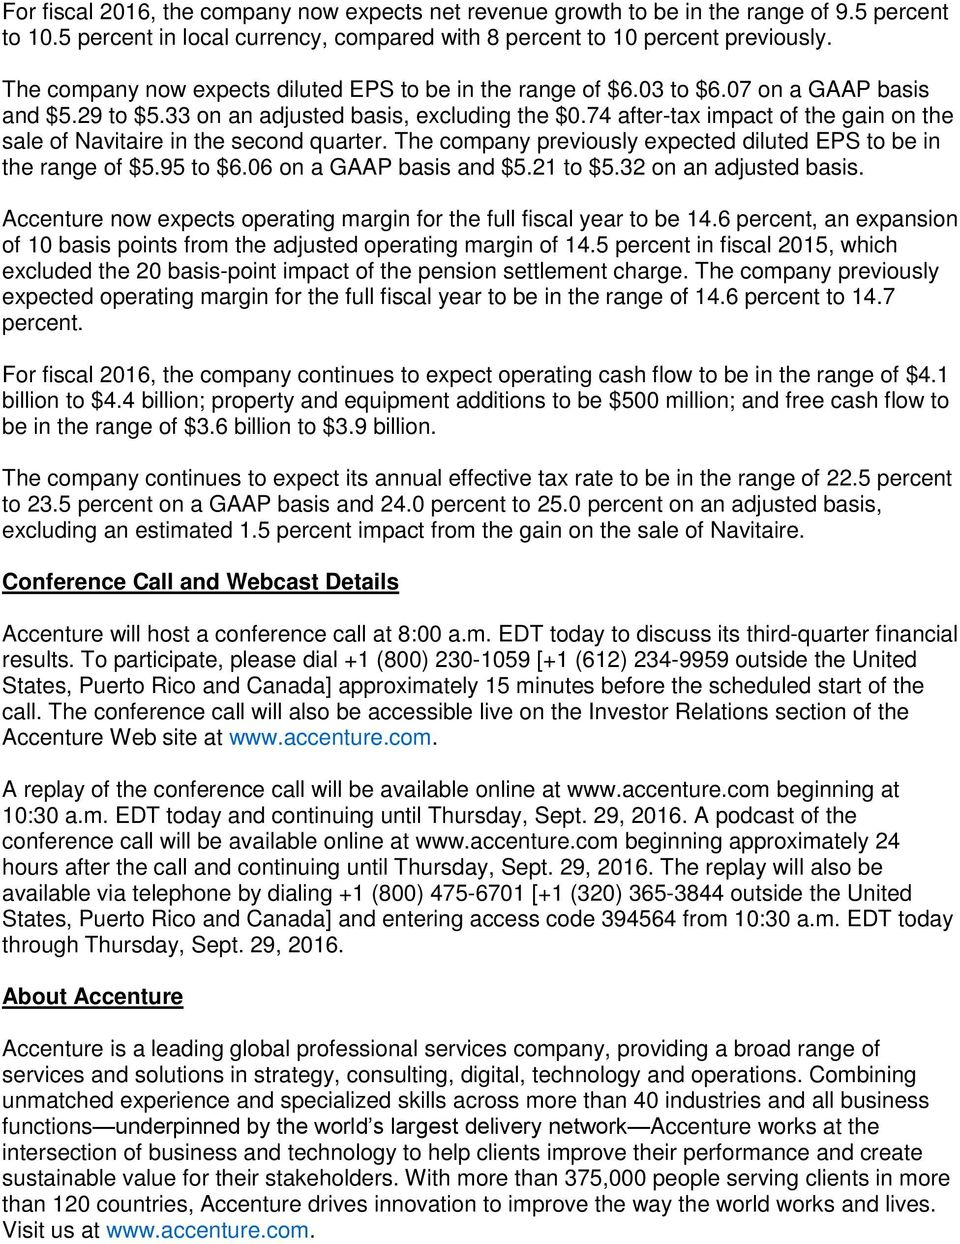 74 after-tax impact of the gain on the sale of Navitaire in the second quarter. The company previously expected diluted EPS to be in the range of $5.95 to $6.06 on a GAAP basis and $5.21 to $5.